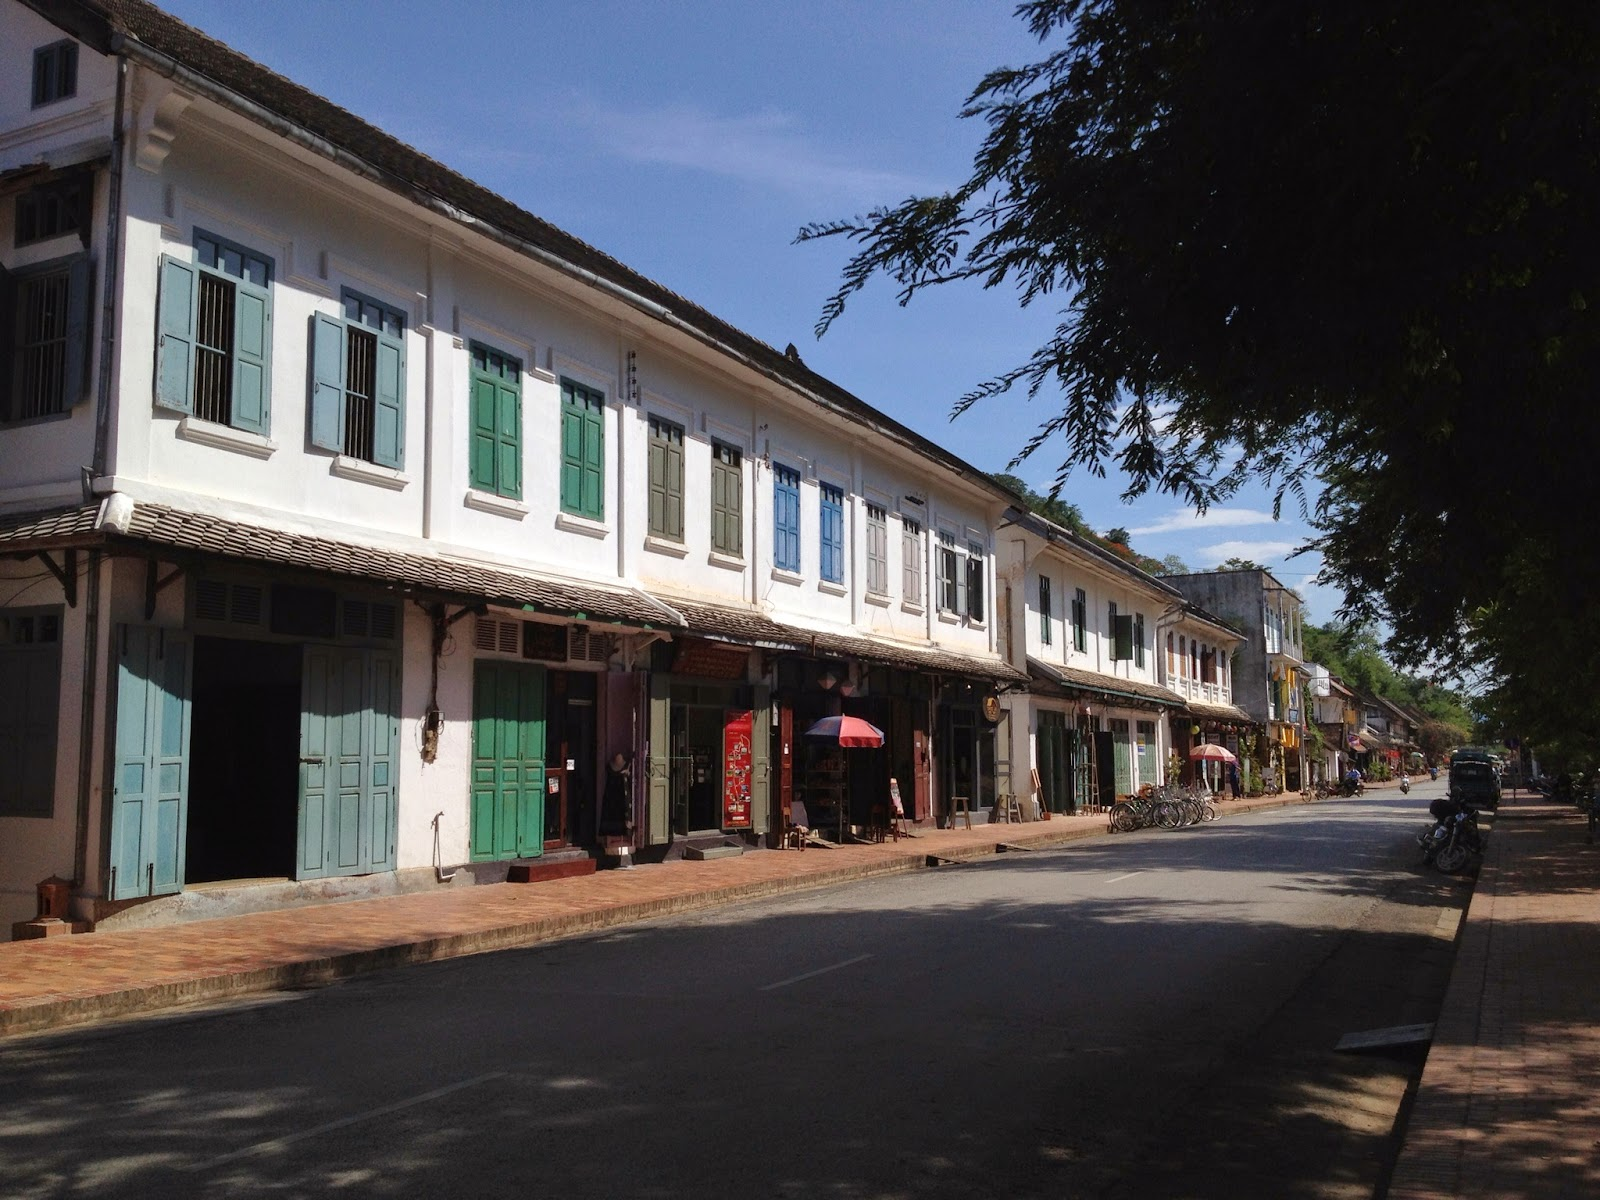 Luang Prabang - French influenced buildings